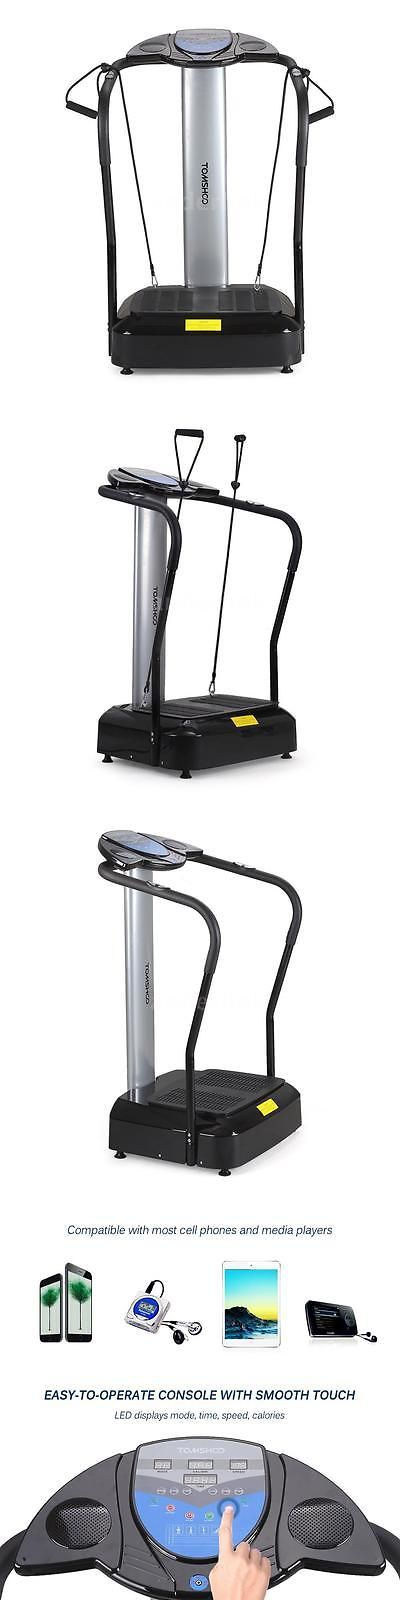 Abdominal Exercisers 15274: Tomshoo 2000W Machine Fitness Exercise Workout Train Home Gym Equipment R0d2 -> BUY IT NOW ONLY: $153.96 on eBay!